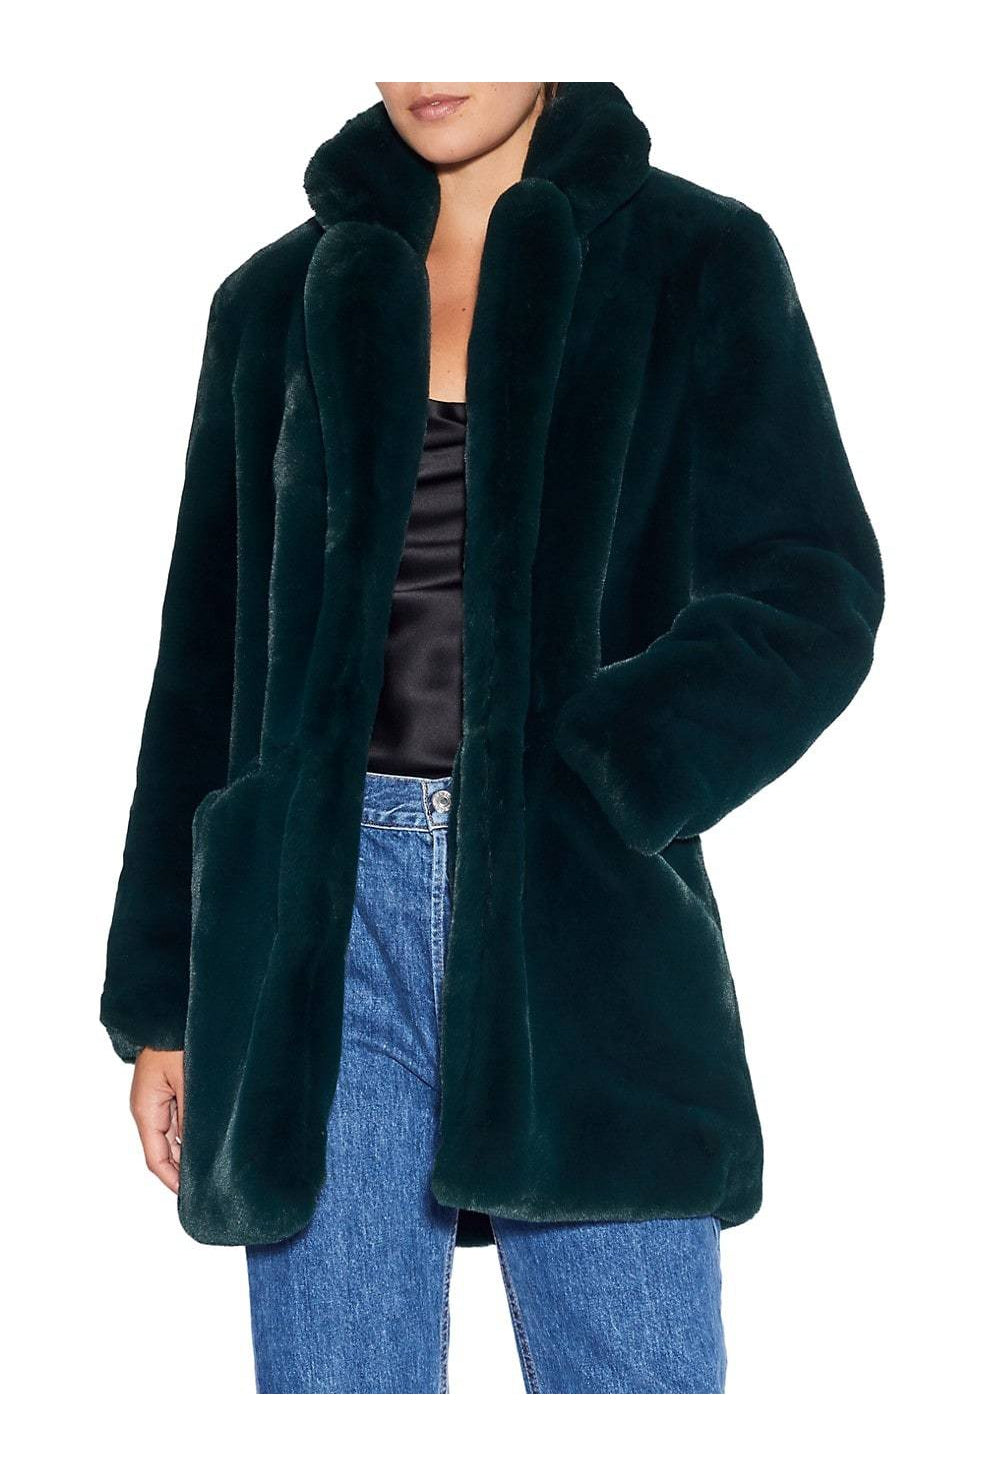 APPARIS SOPHIE FAUX FUR JACKET IN EMERALD